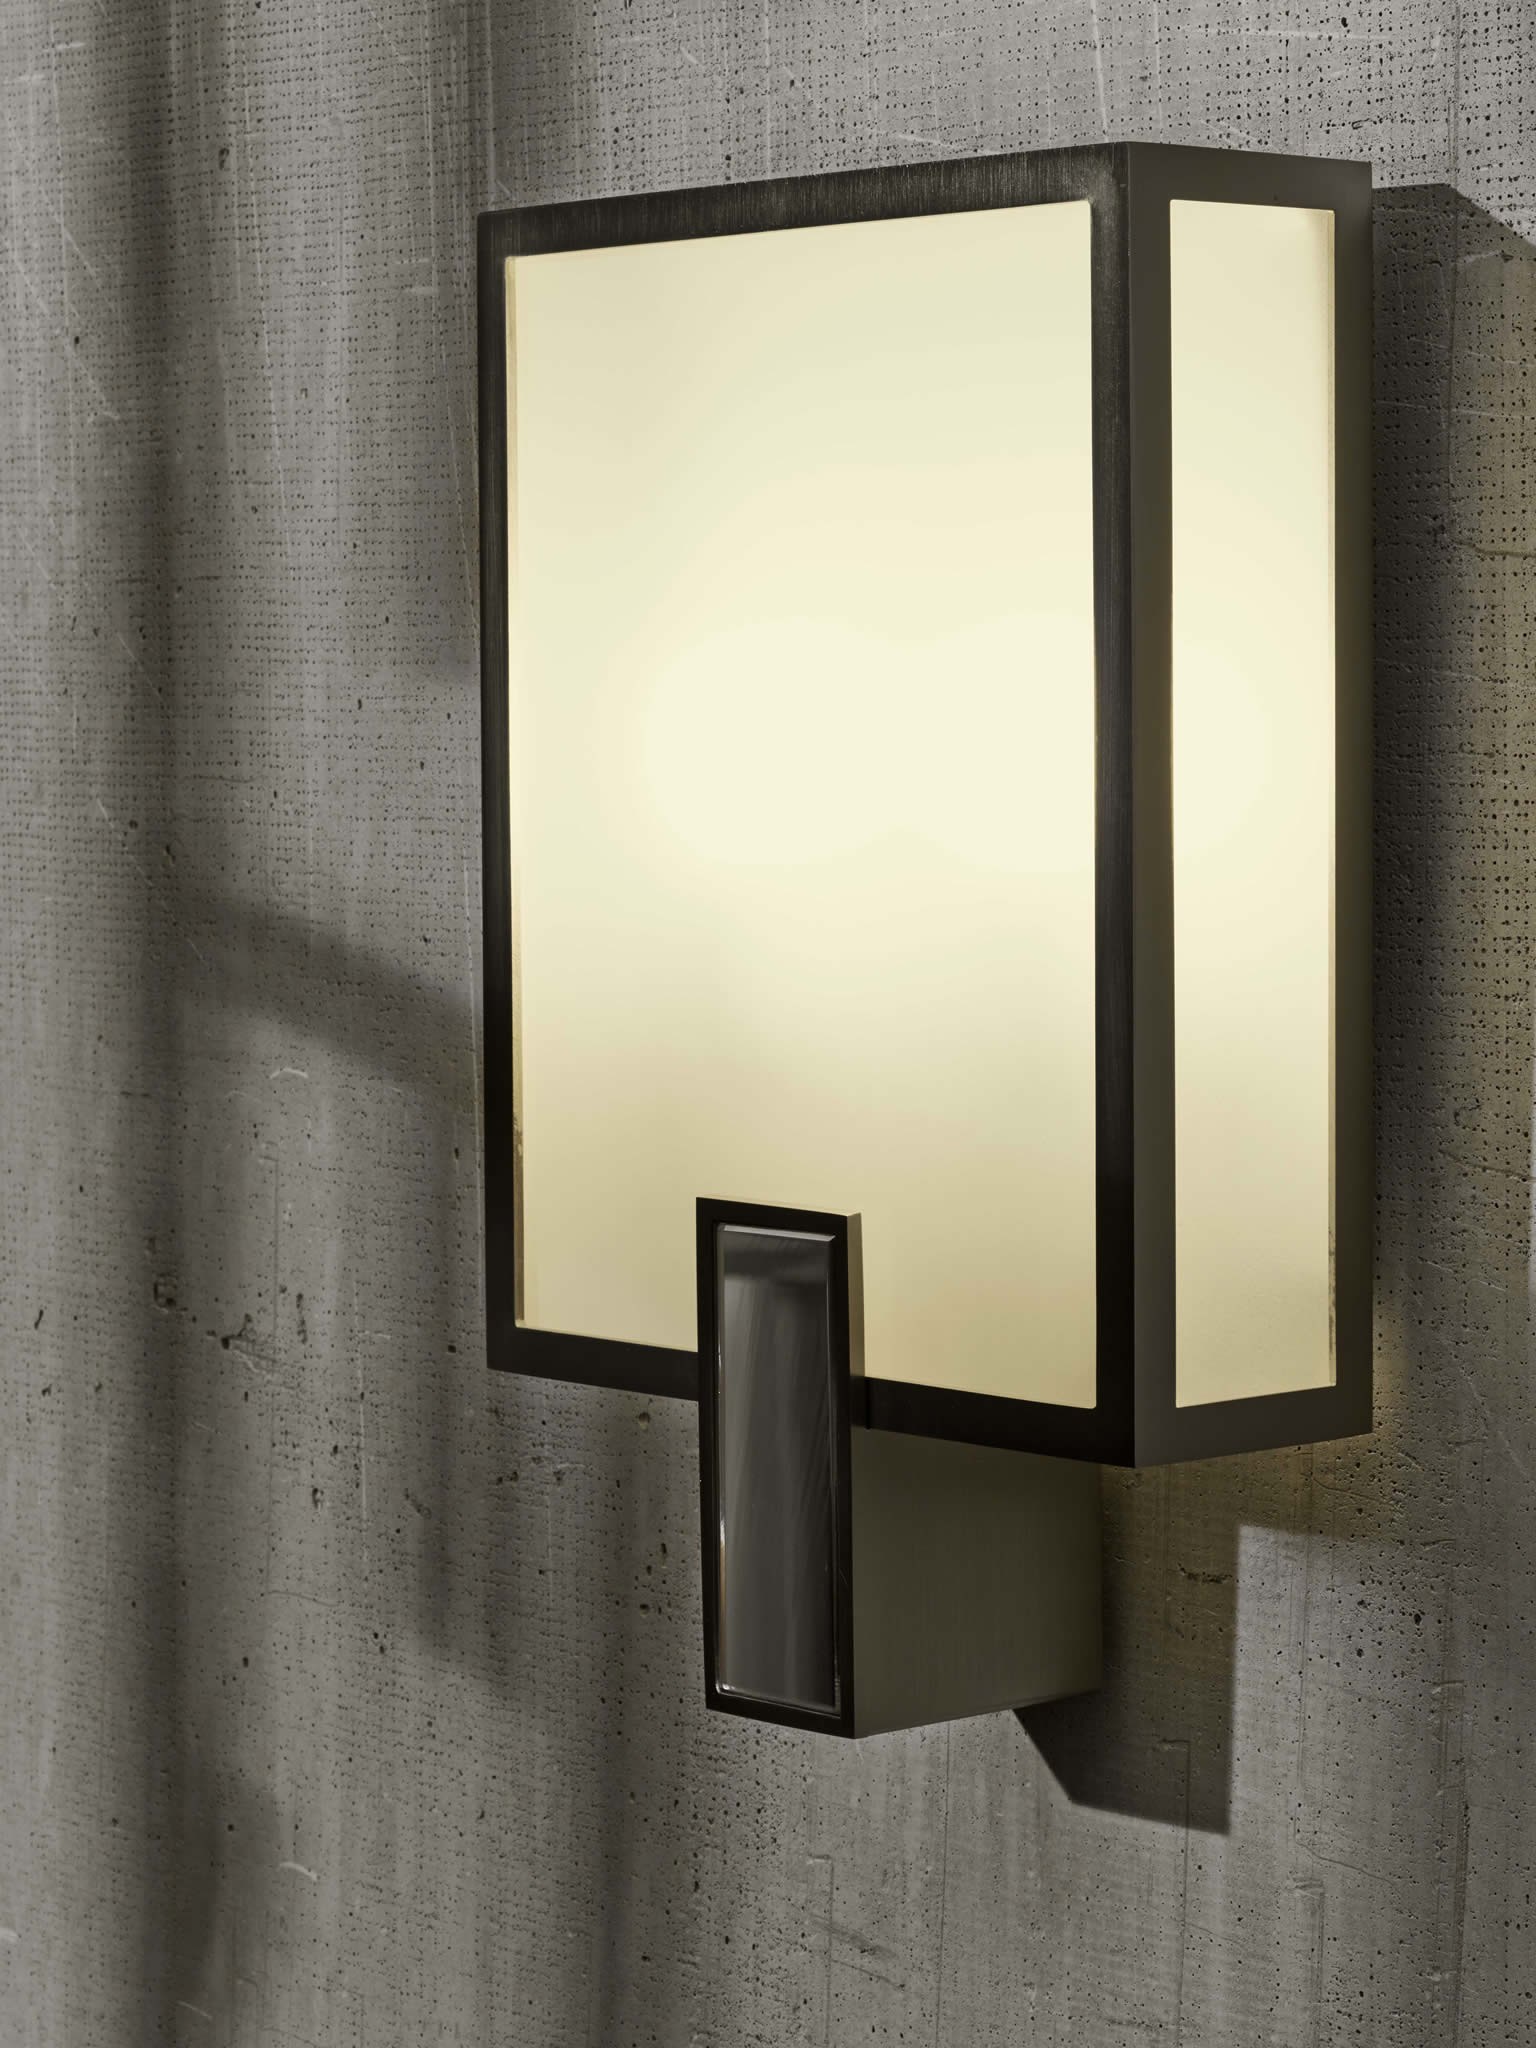 Wall Light Switch Remote Control : CL Sterling & Son Rectangular Wall Sconce